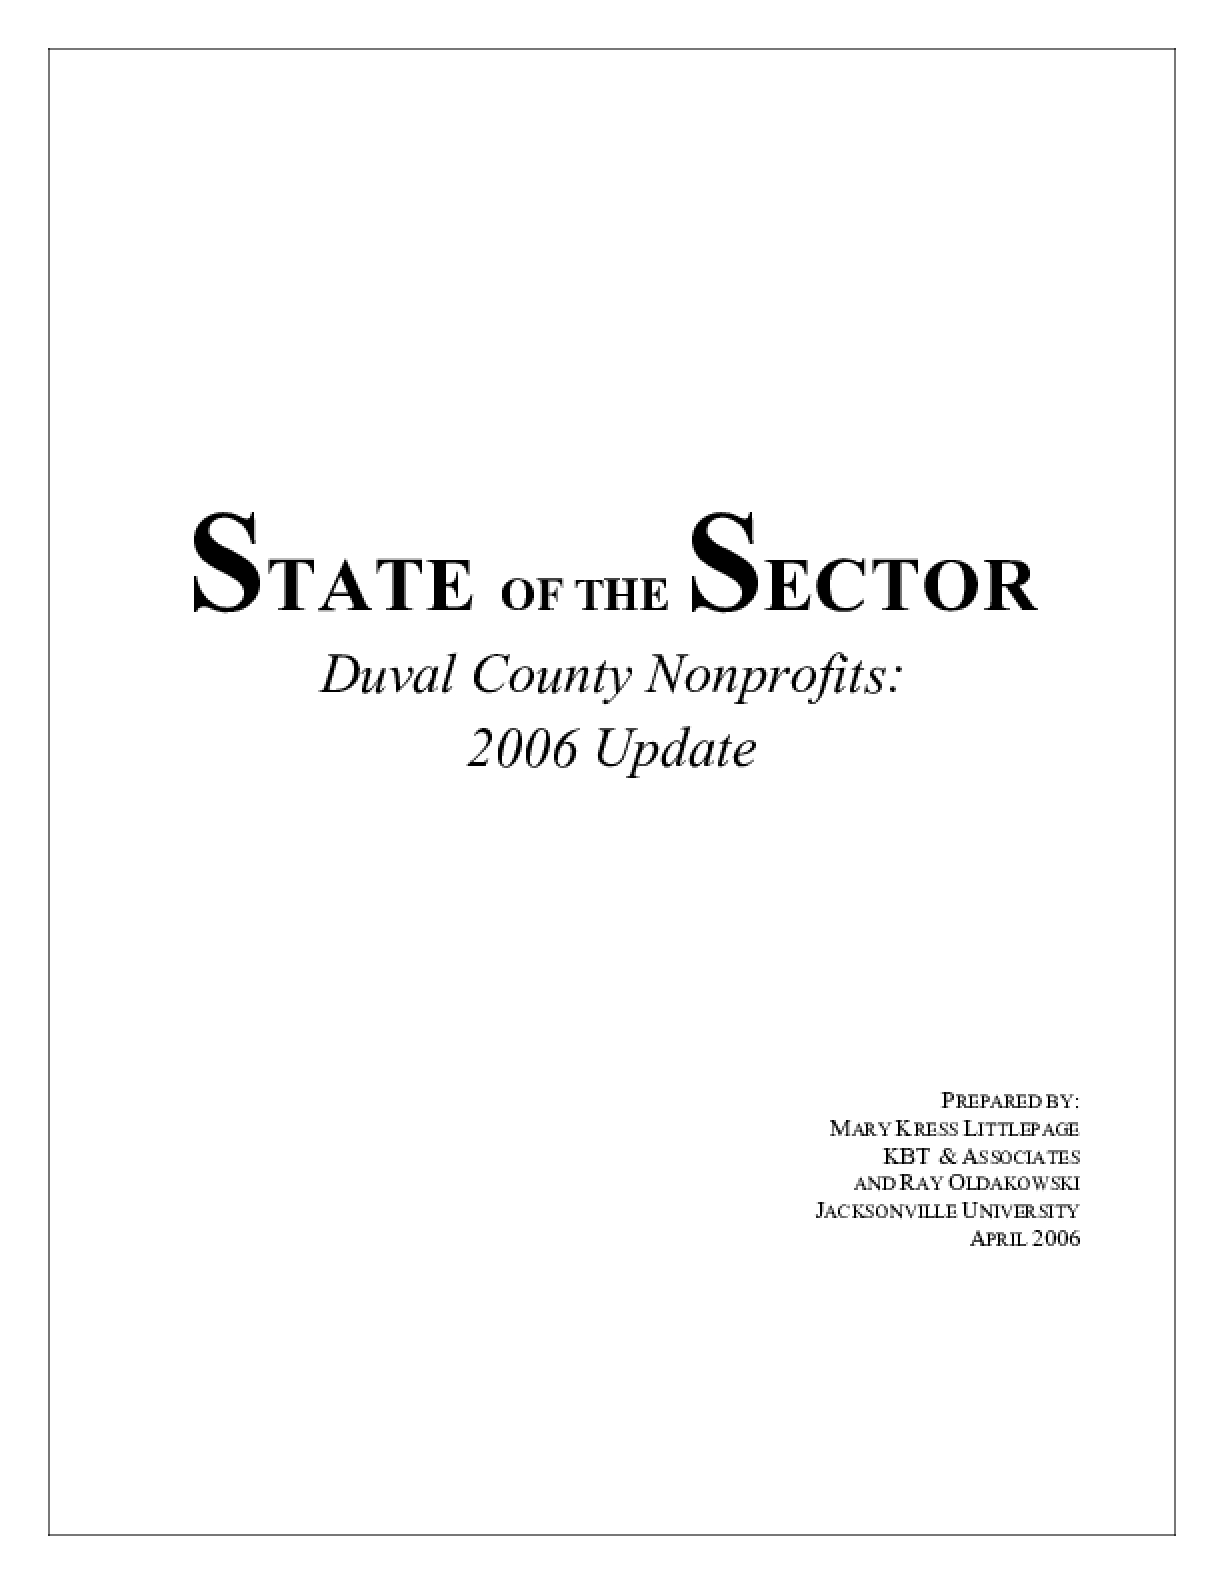 State of the Sector: Duval County Nonprofits - 2006 Update